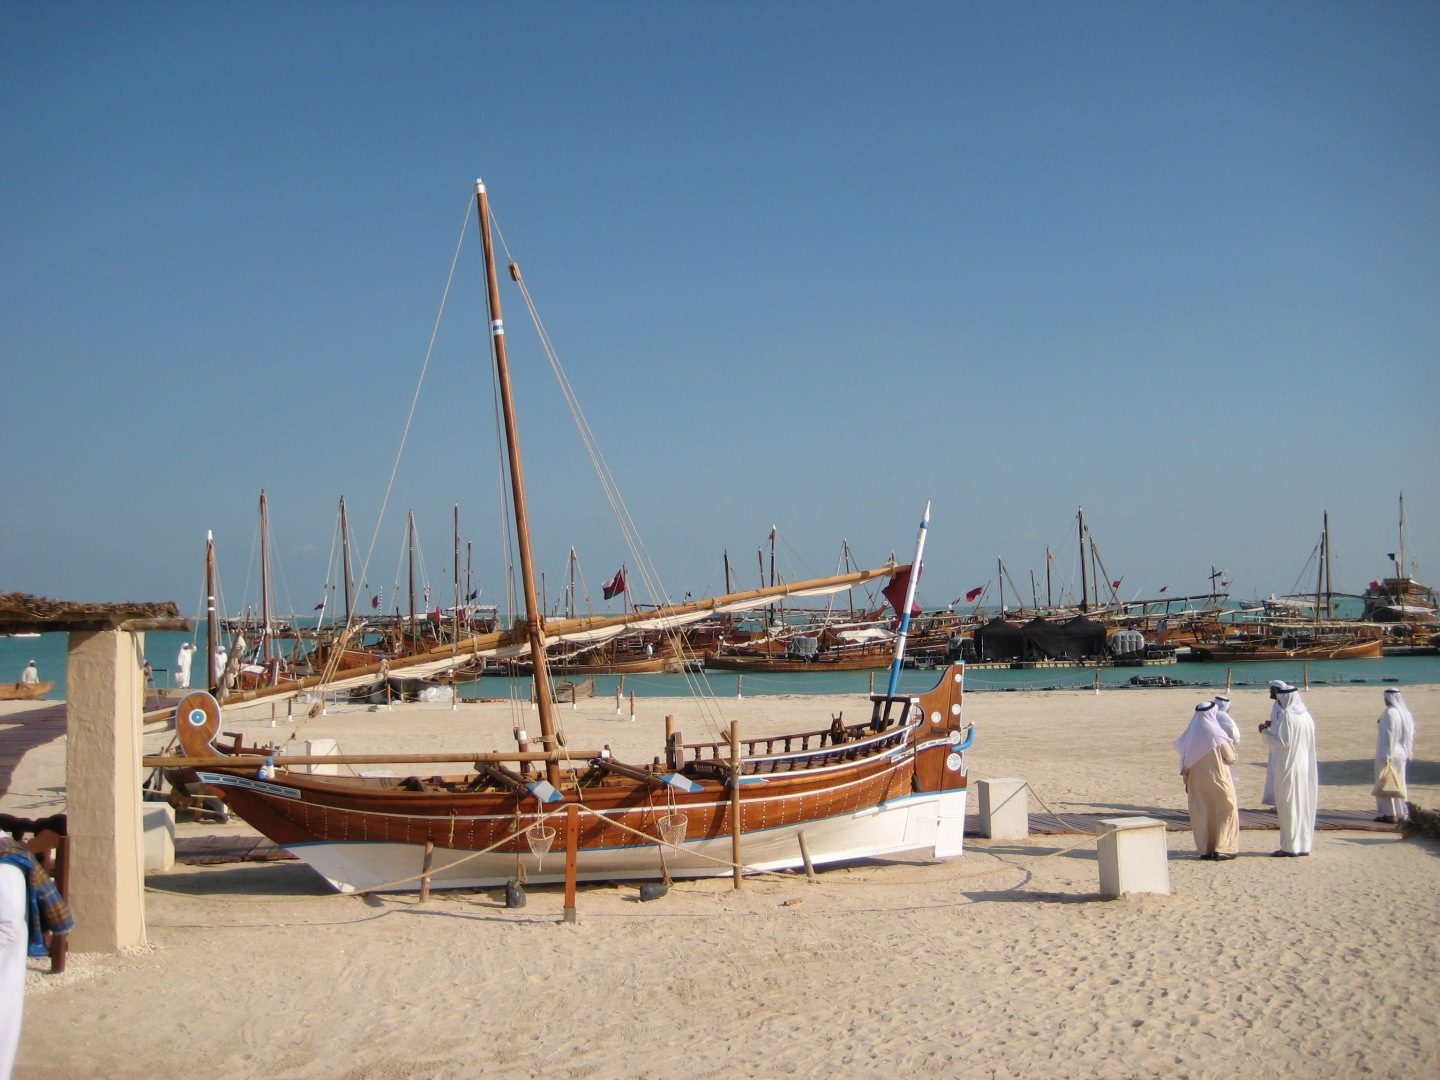 Third annual Katara Dhow Festival at Katara Cultural Village, in Doha, Qatar.